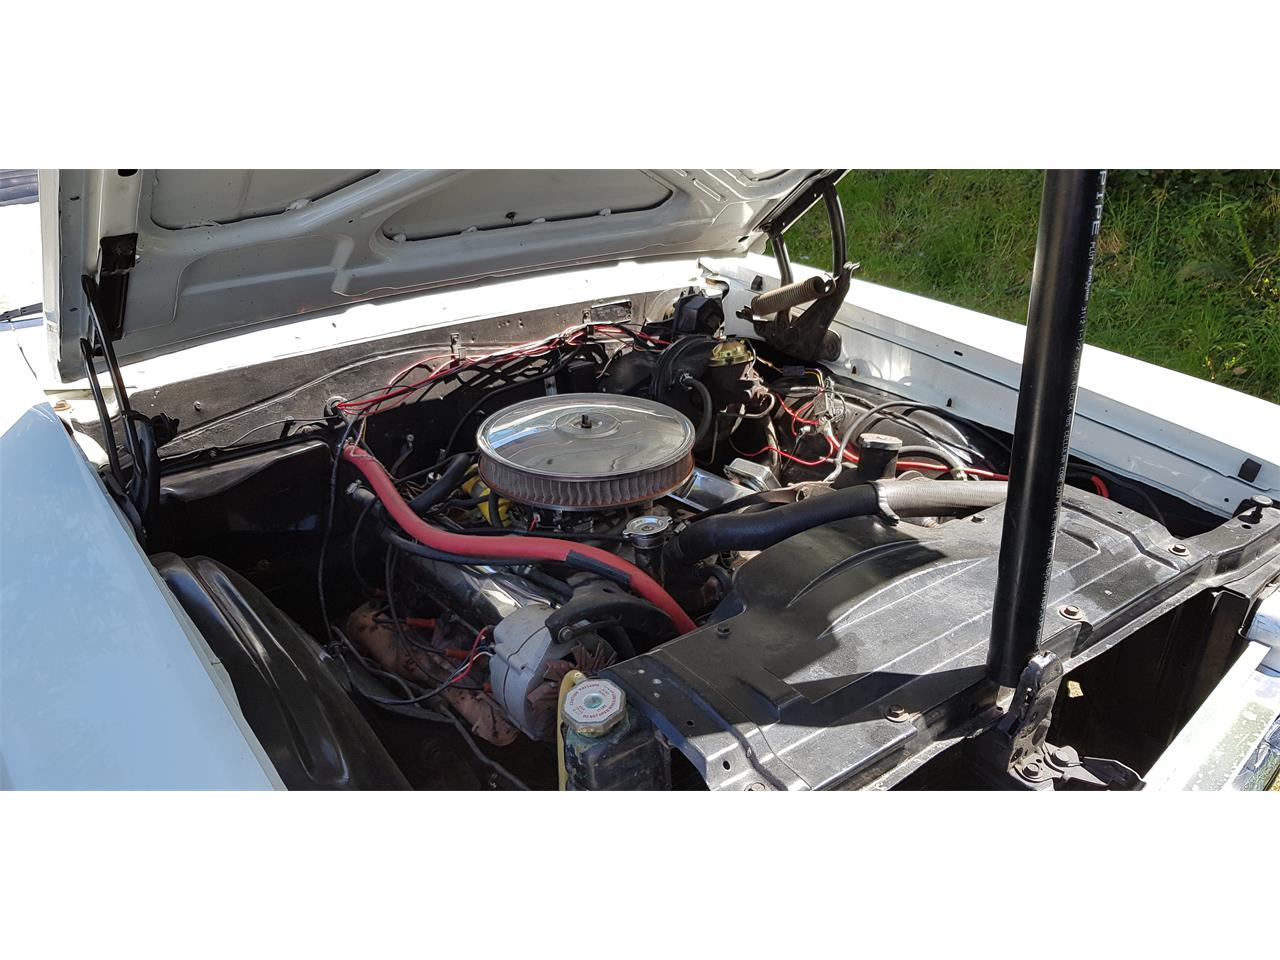 Large Picture of 1966 Oldsmobile Cutlass Supreme located in Port Orford Oregon - $15,000.00 Offered by a Private Seller - Q0S8